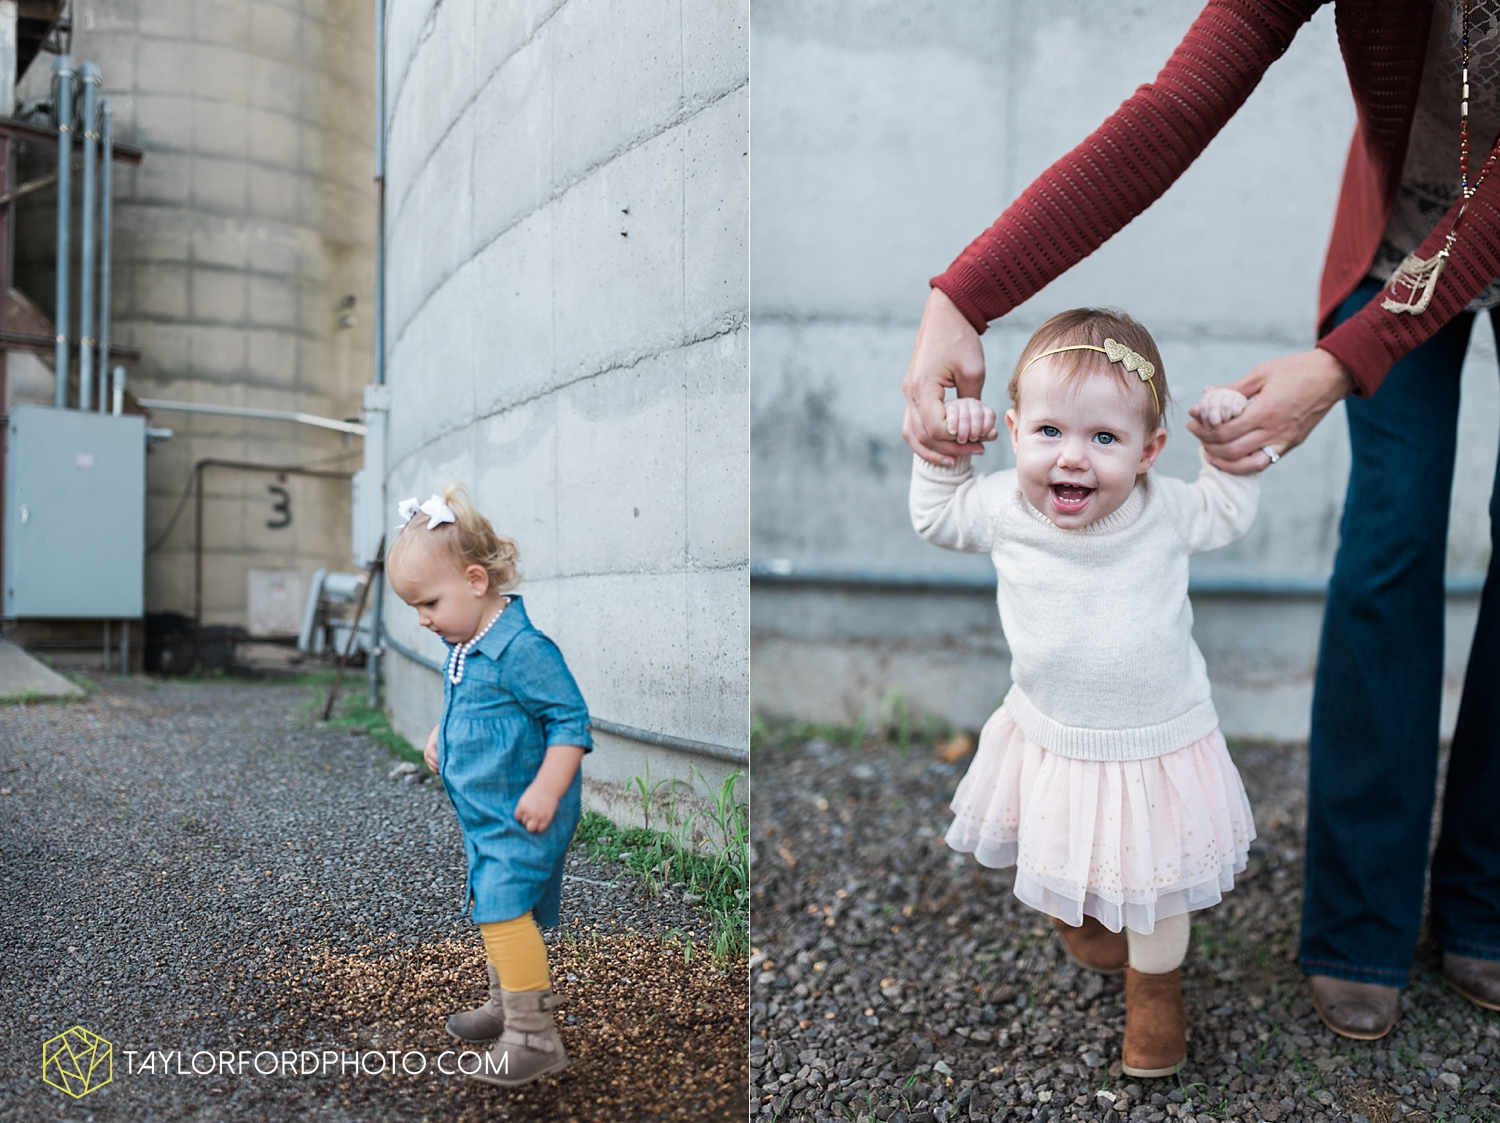 middle_point_findlay_ohio_family_photographer_taylor_ford_2709.jpg